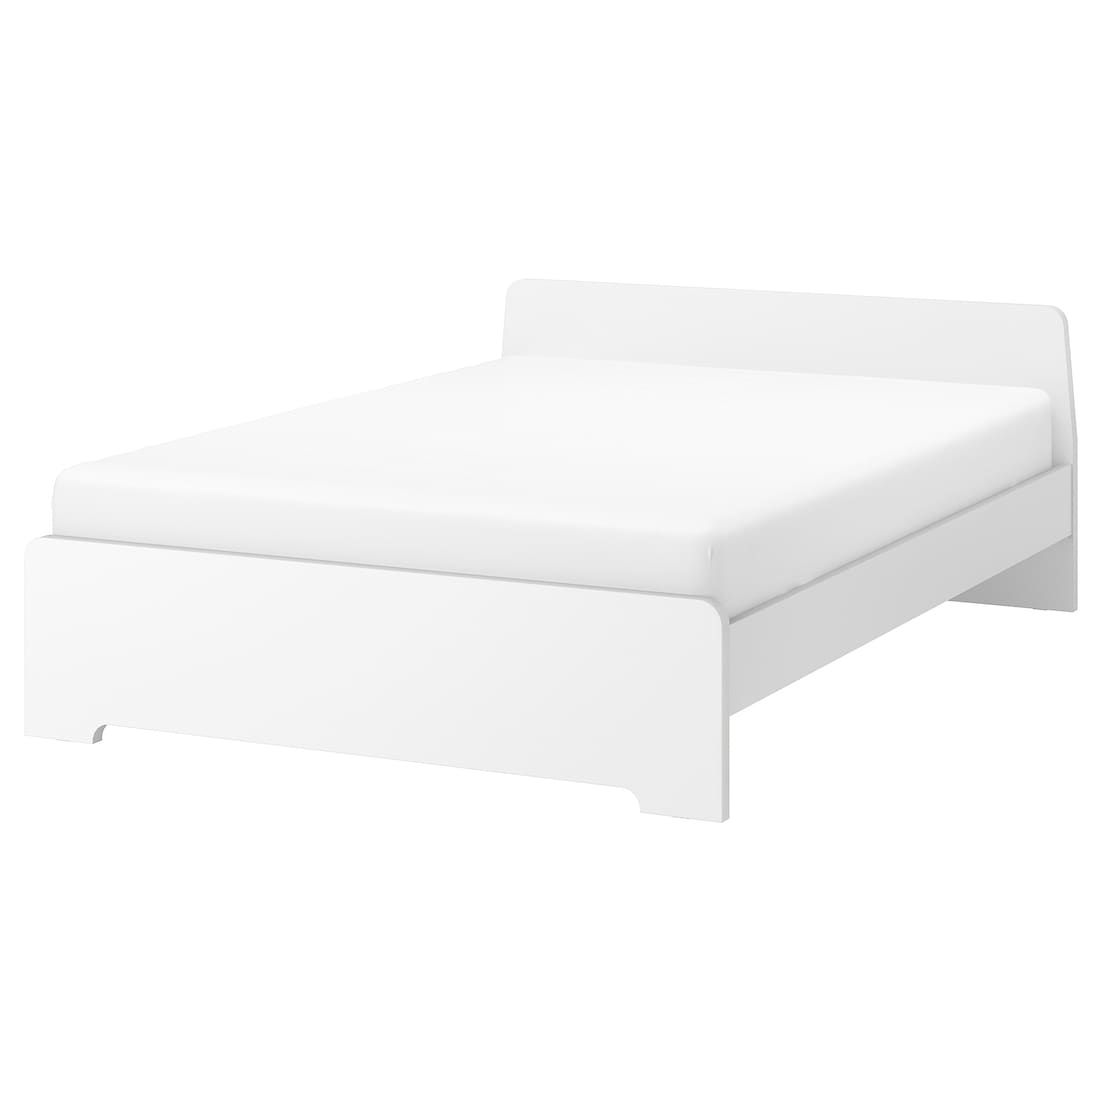 Askvoll Bettgestell Weiss Ikea Deutschland Bed Frame With Storage Bed Frame Malm Bed Frame